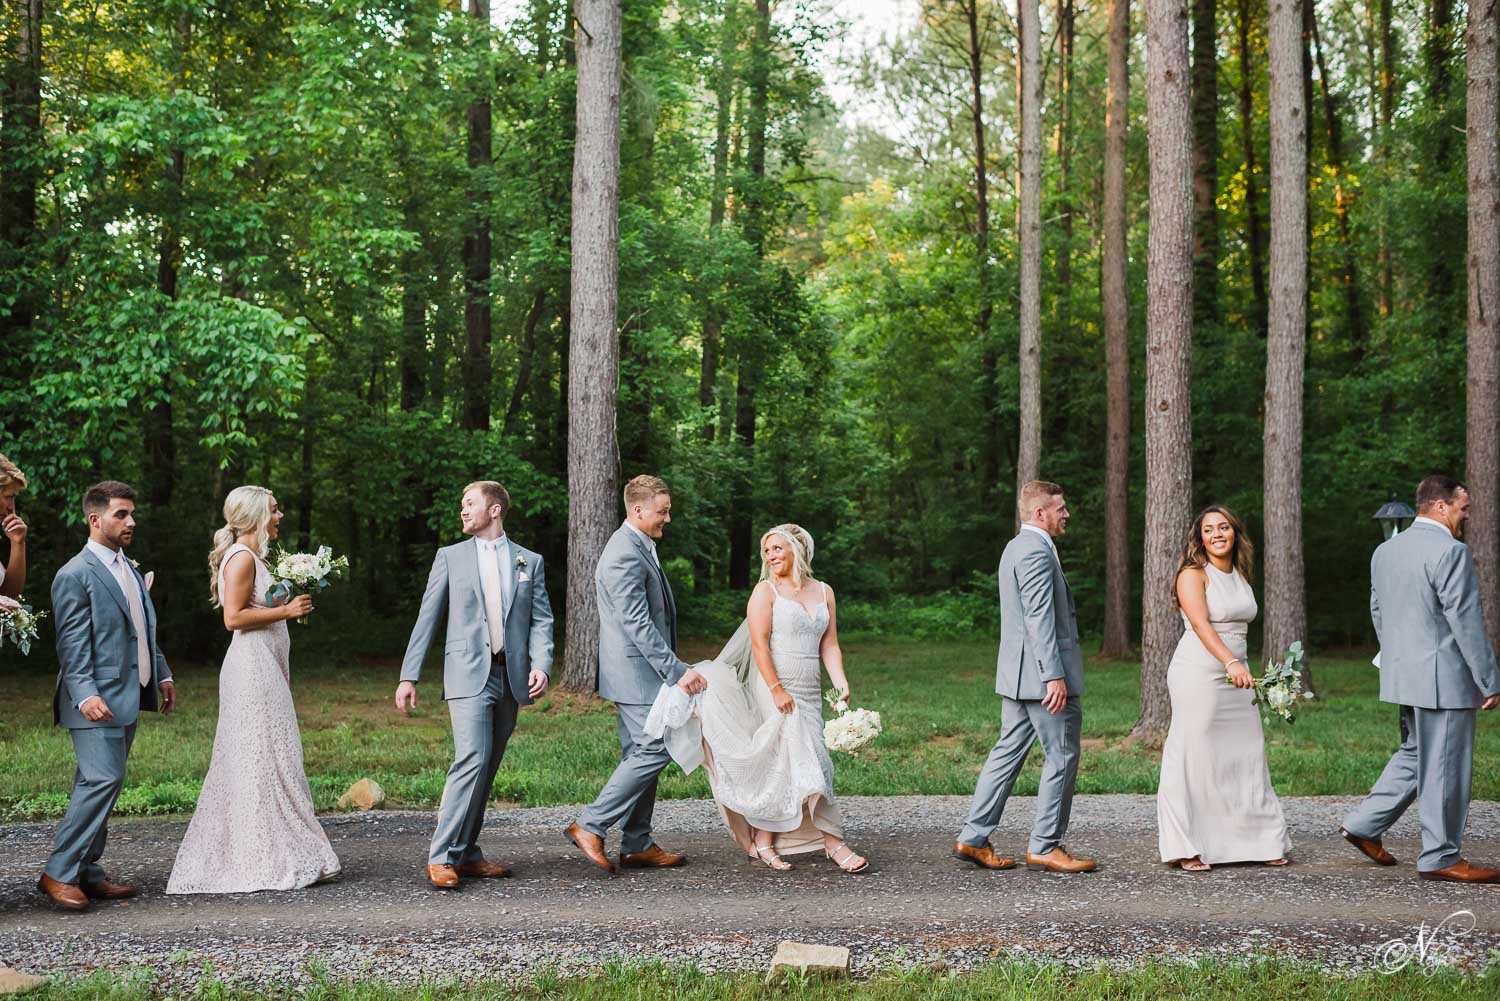 12 person wedding party walking through woods in Tennessee